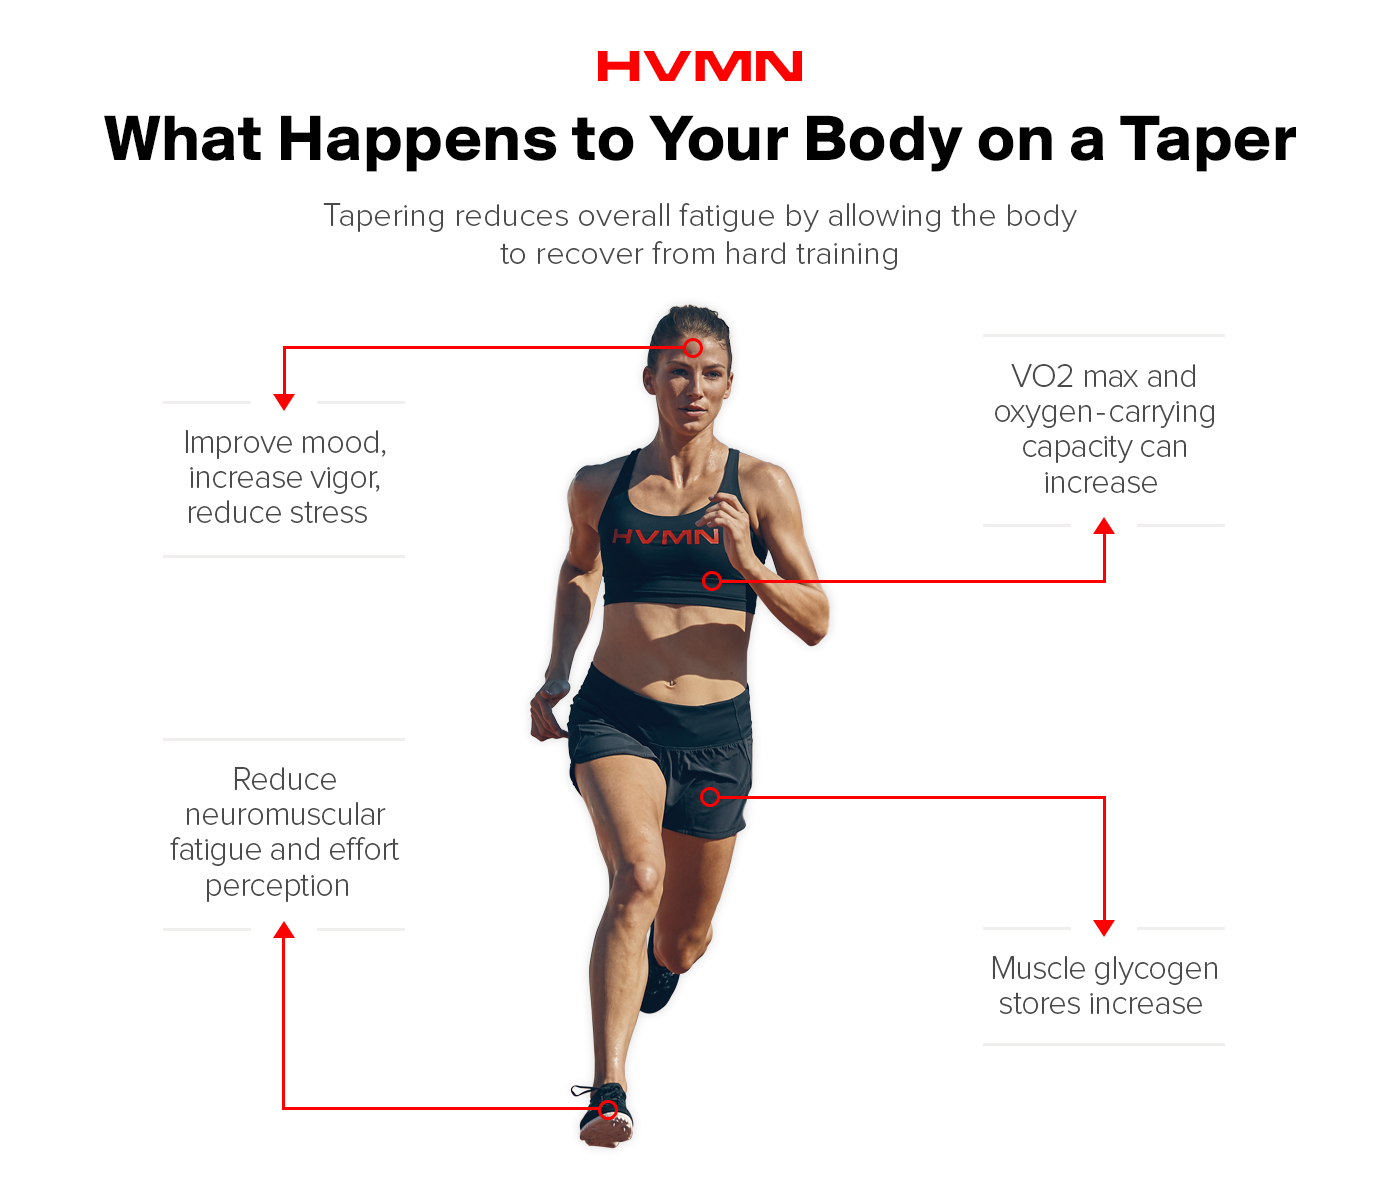 An image of a female runner in stride, showing what happens to the body while tapering